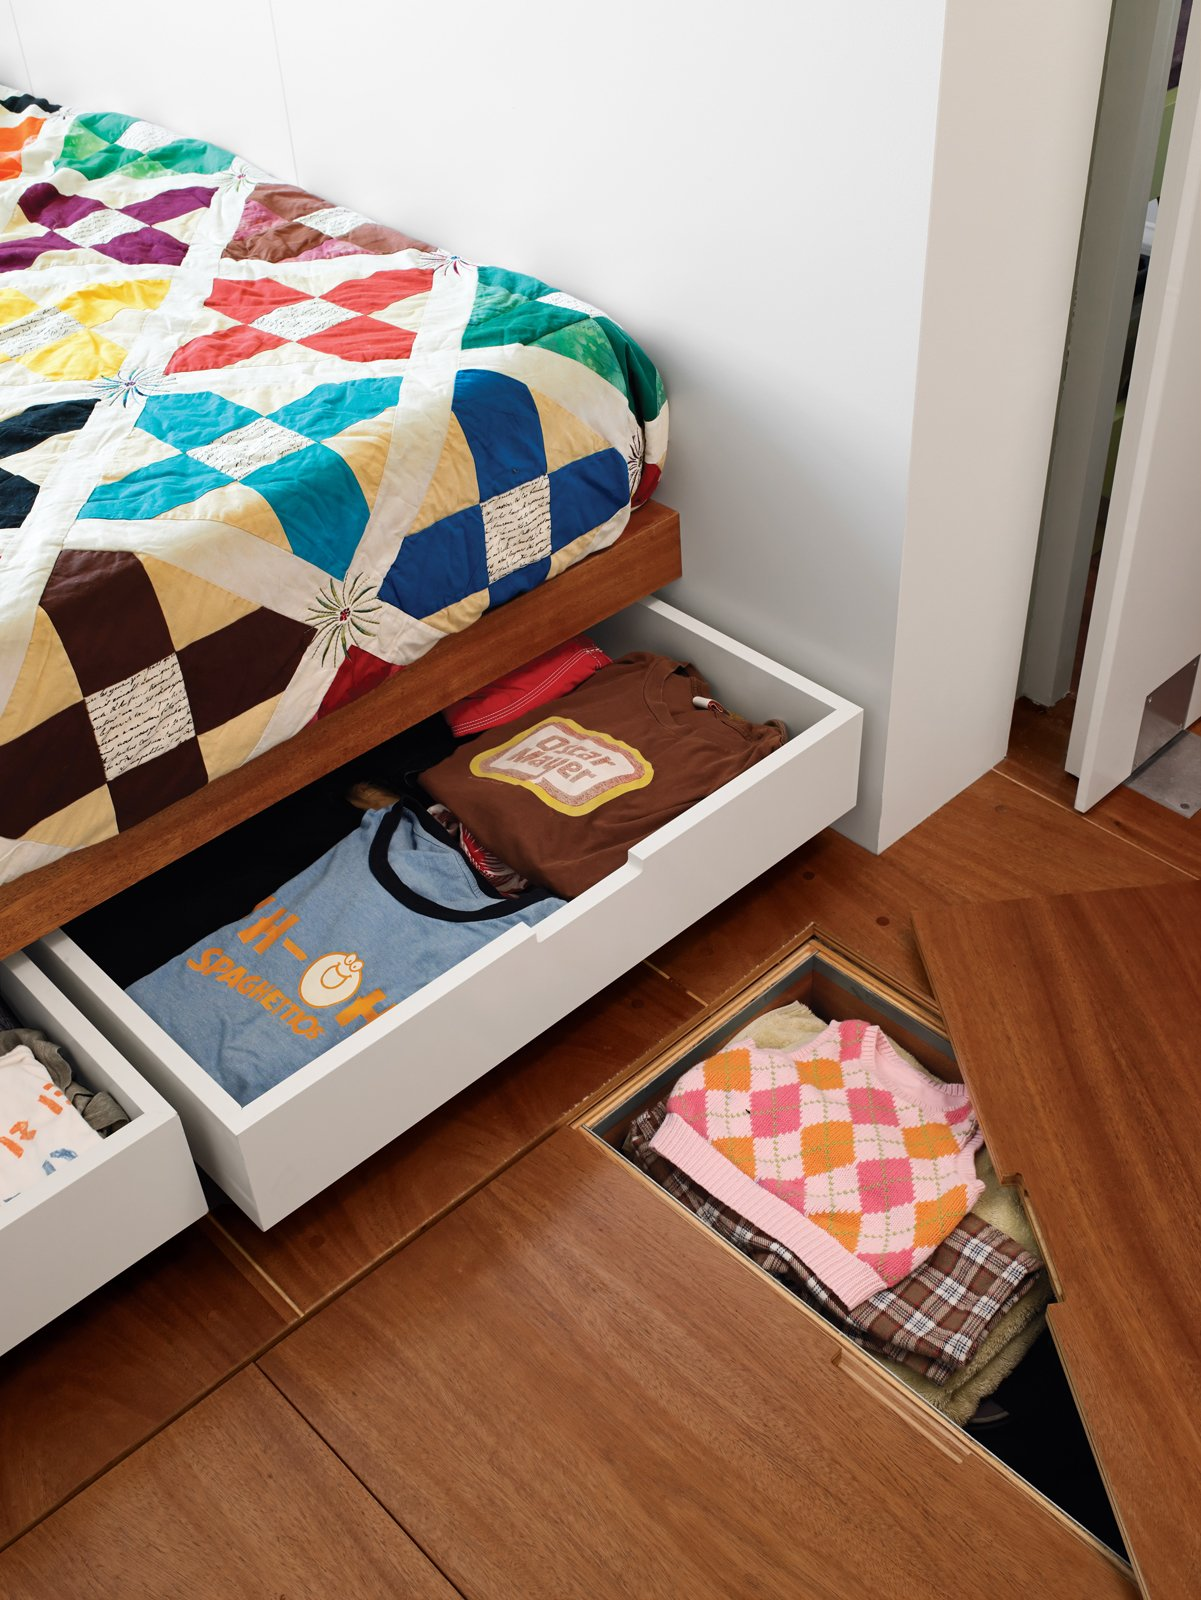 Storage Room Storage under the bed and floor hides clutter in the master bedroom.  Surprising Clothing Storage Solutions by Jaime Gillin from Storage-Smart Renovation in New York City